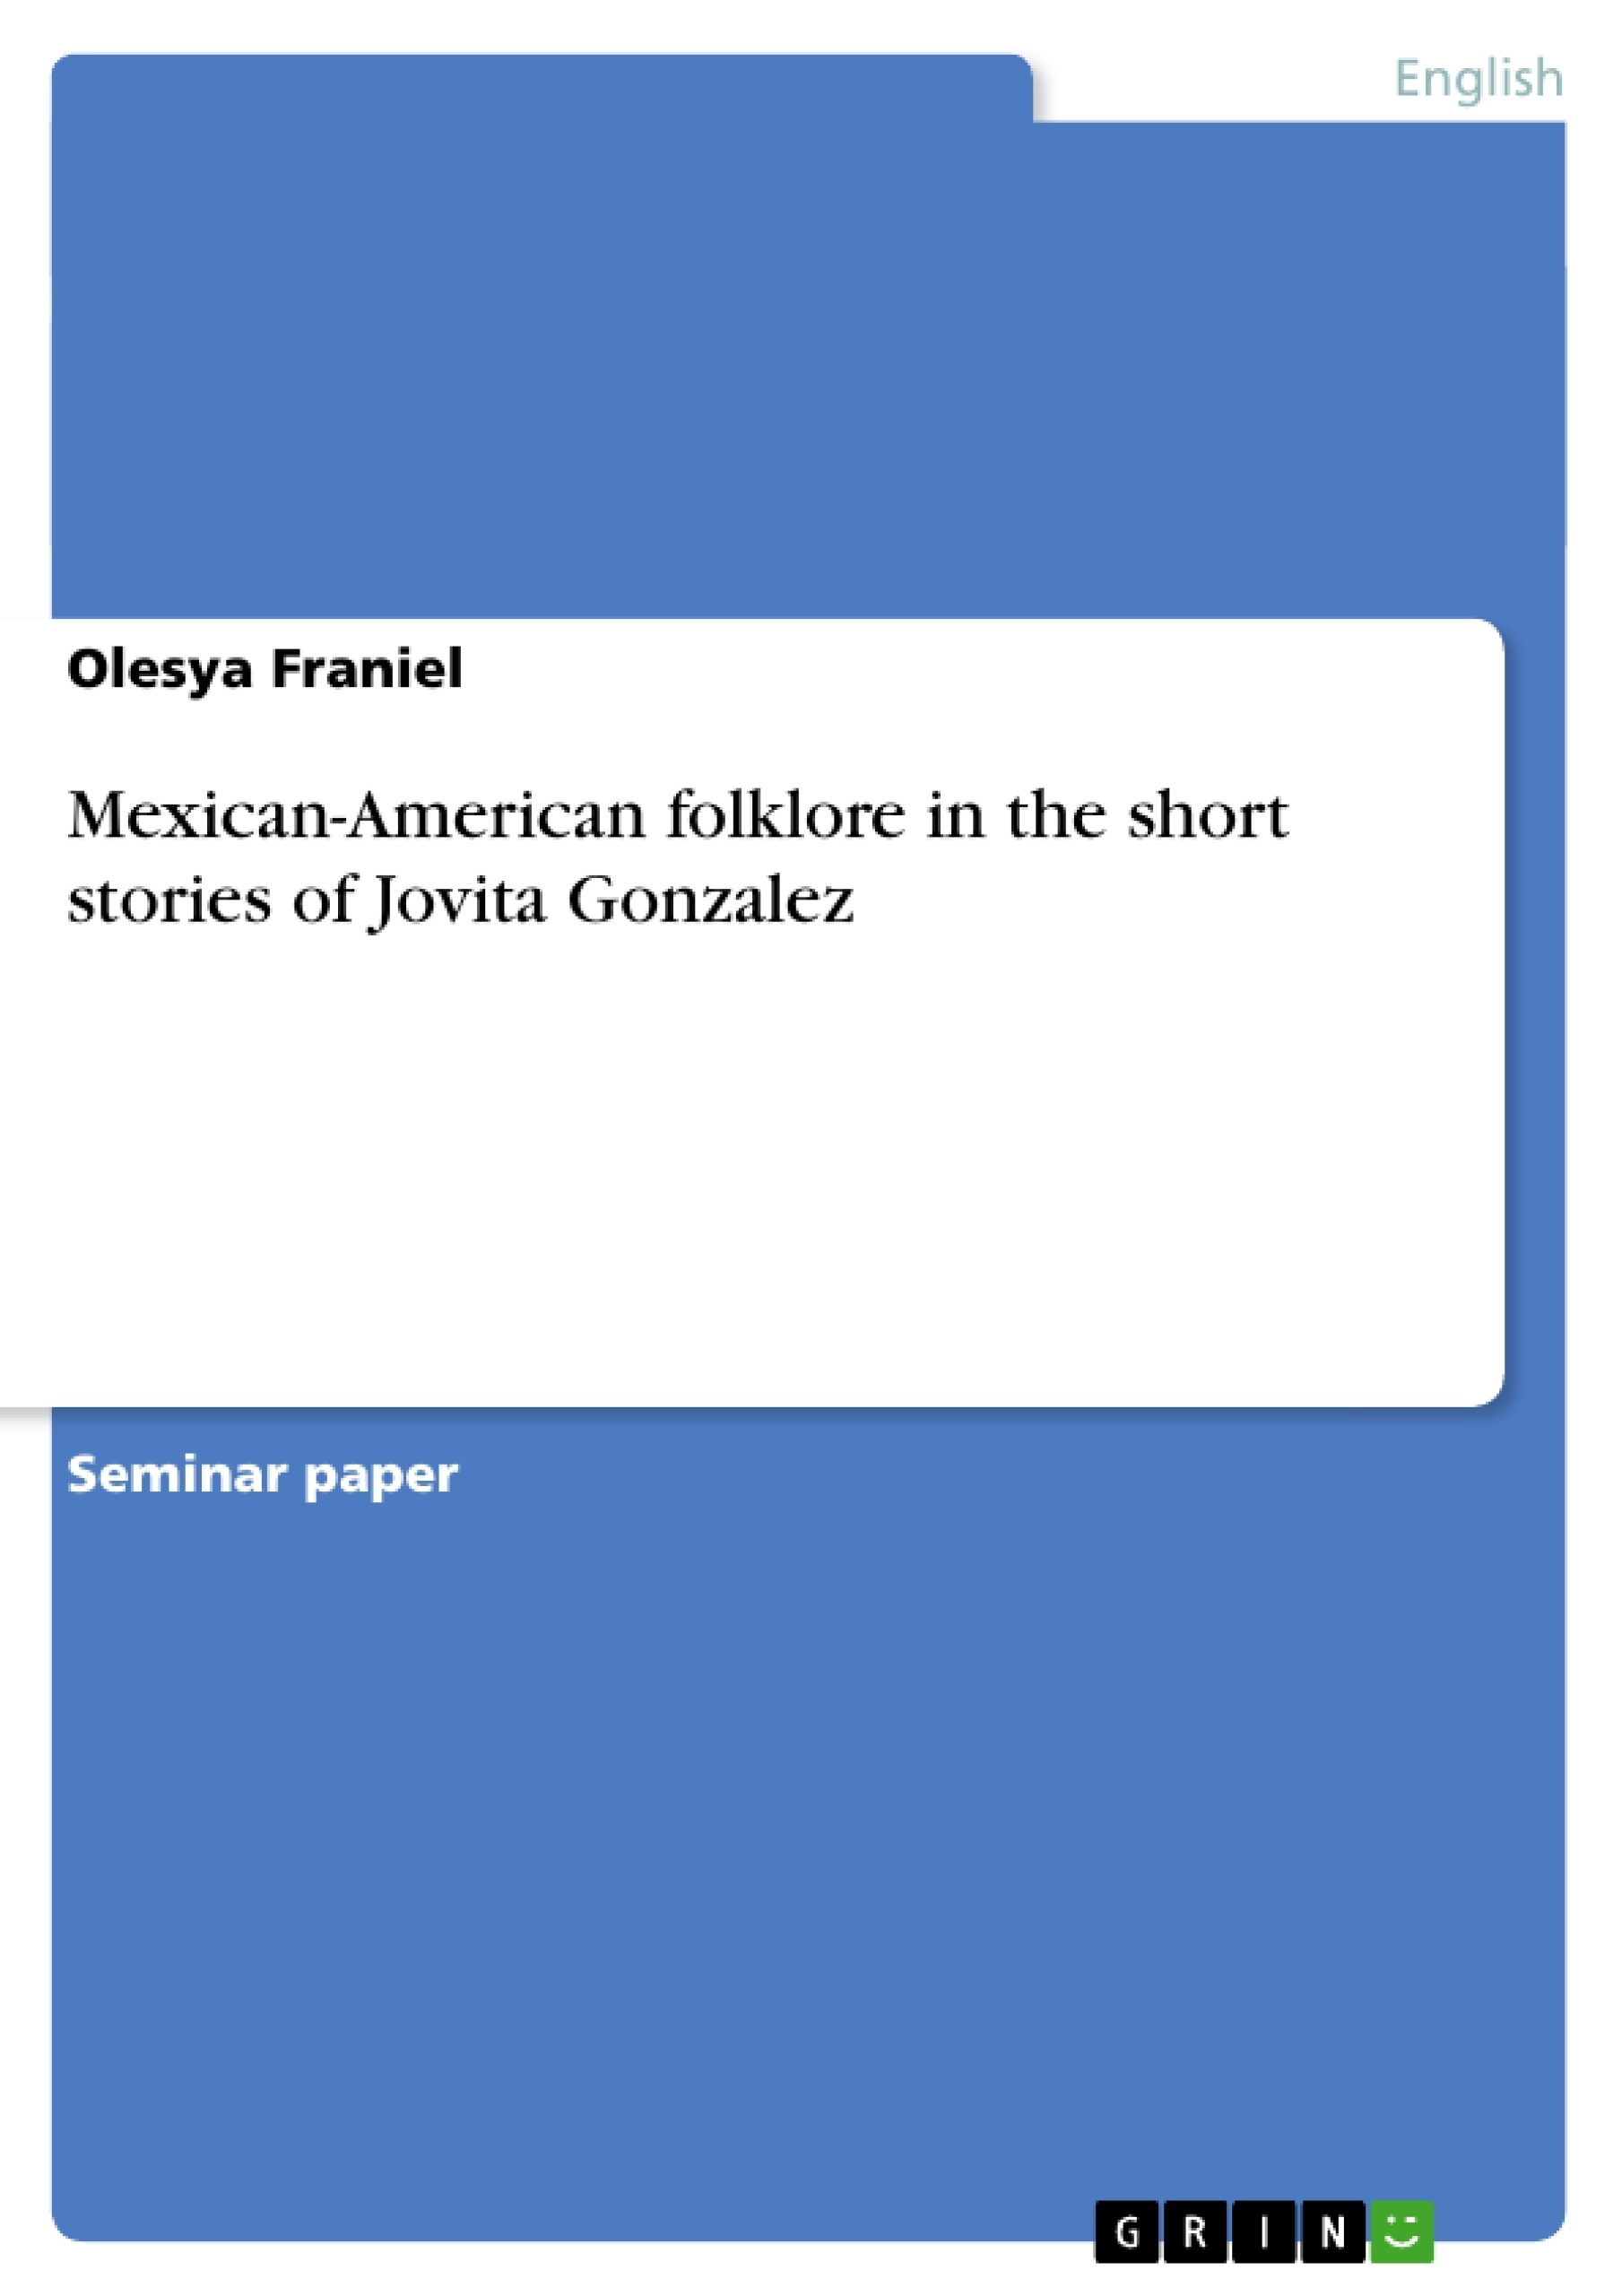 Title: Mexican-American folklore in the short stories of Jovita Gonzalez